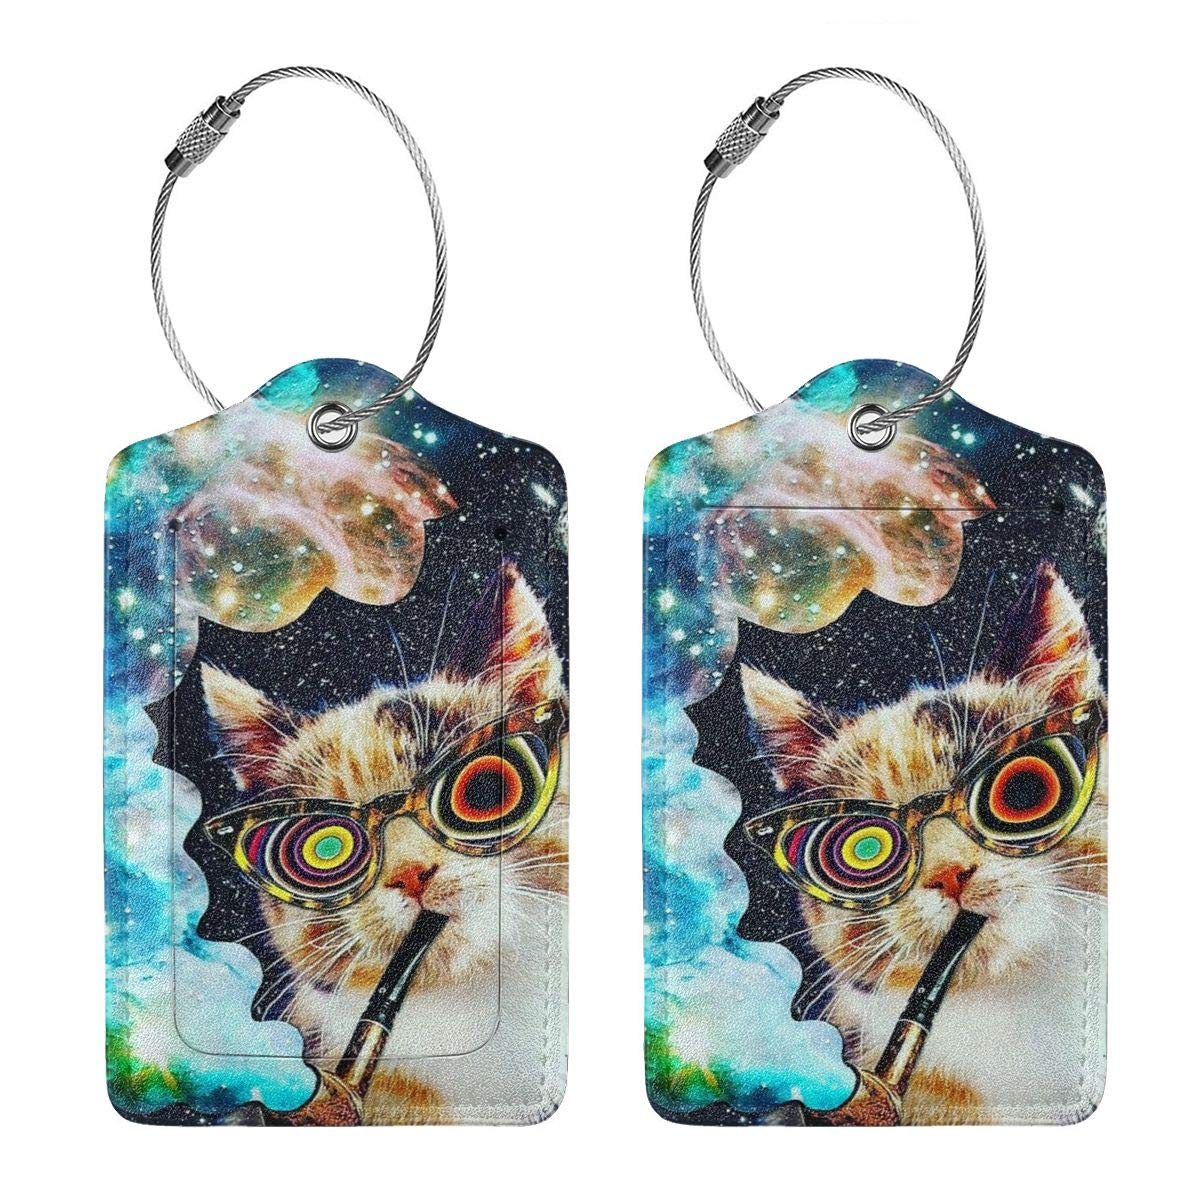 Travel Luggage Tags PU Leather Bag Tags Suitcase Baggage Label Handbag Tag With Full Back Privacy Cover Steel Loops Space Cat With Glasses Smoking set of 4